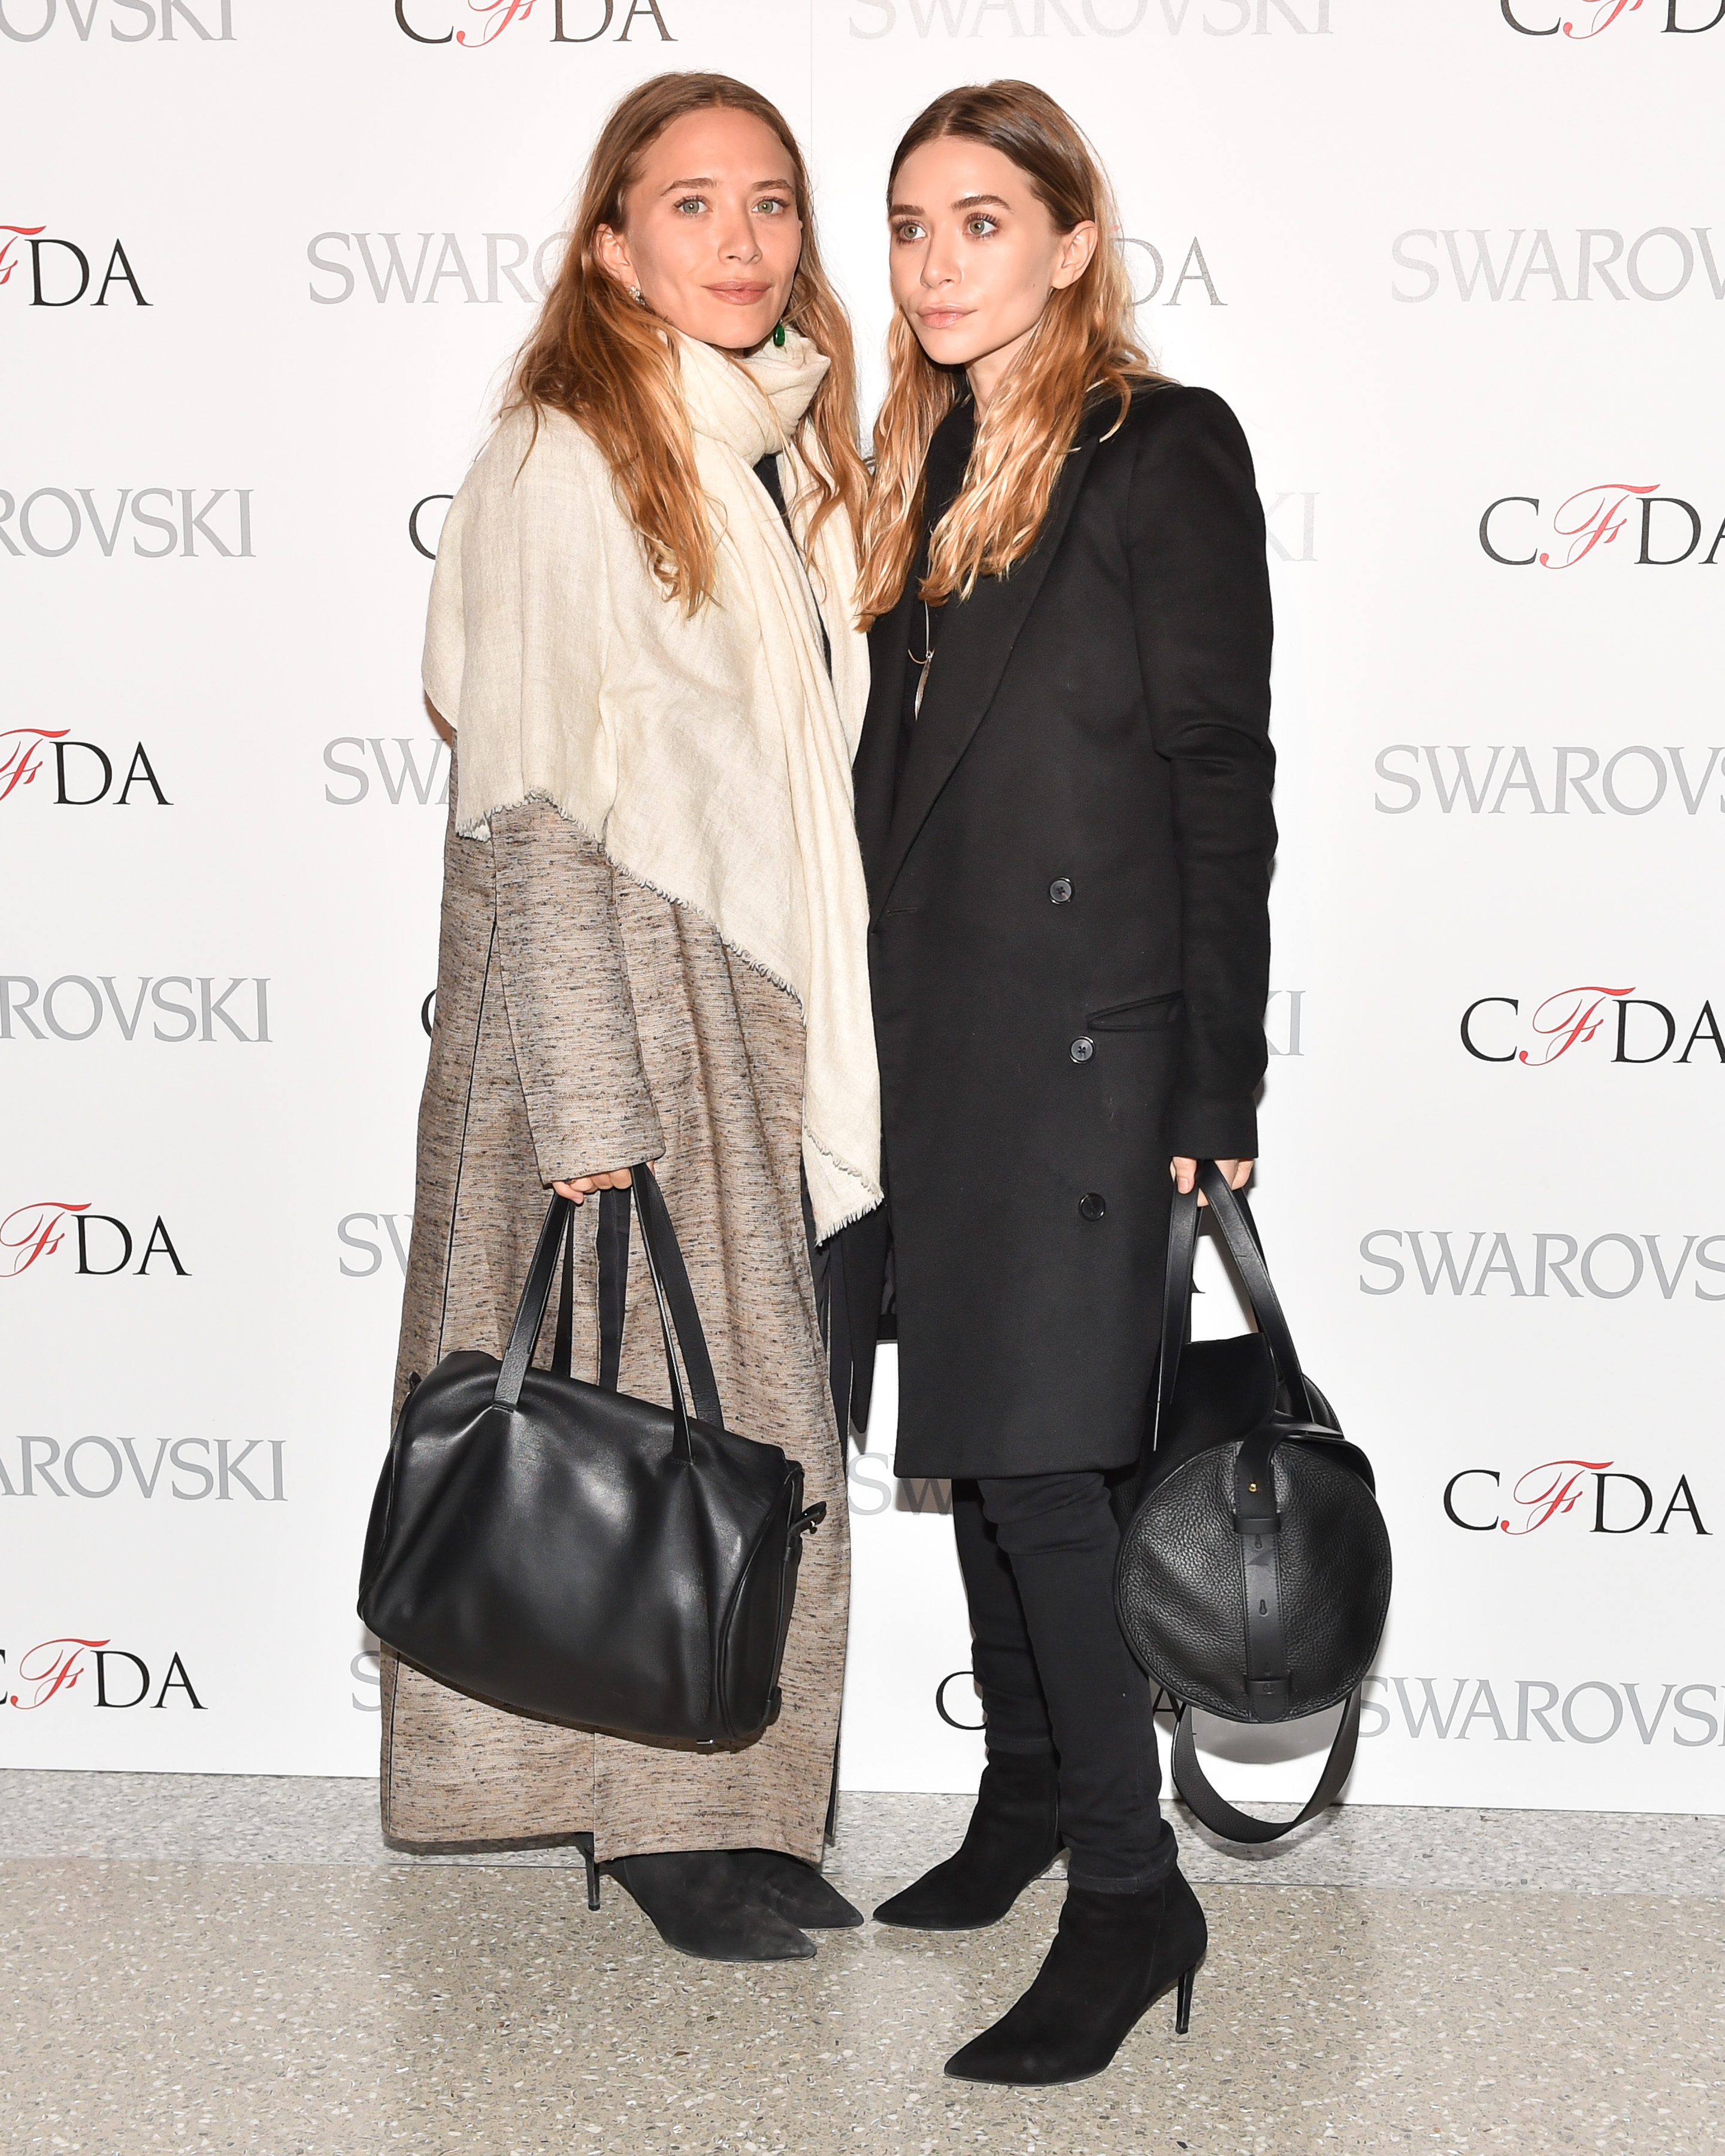 Mary-Kate Olsen (L) and Ashley Olsen attend 2015 CFDA Fashion Awards Announcement Party in New York City on March 16, 2015.